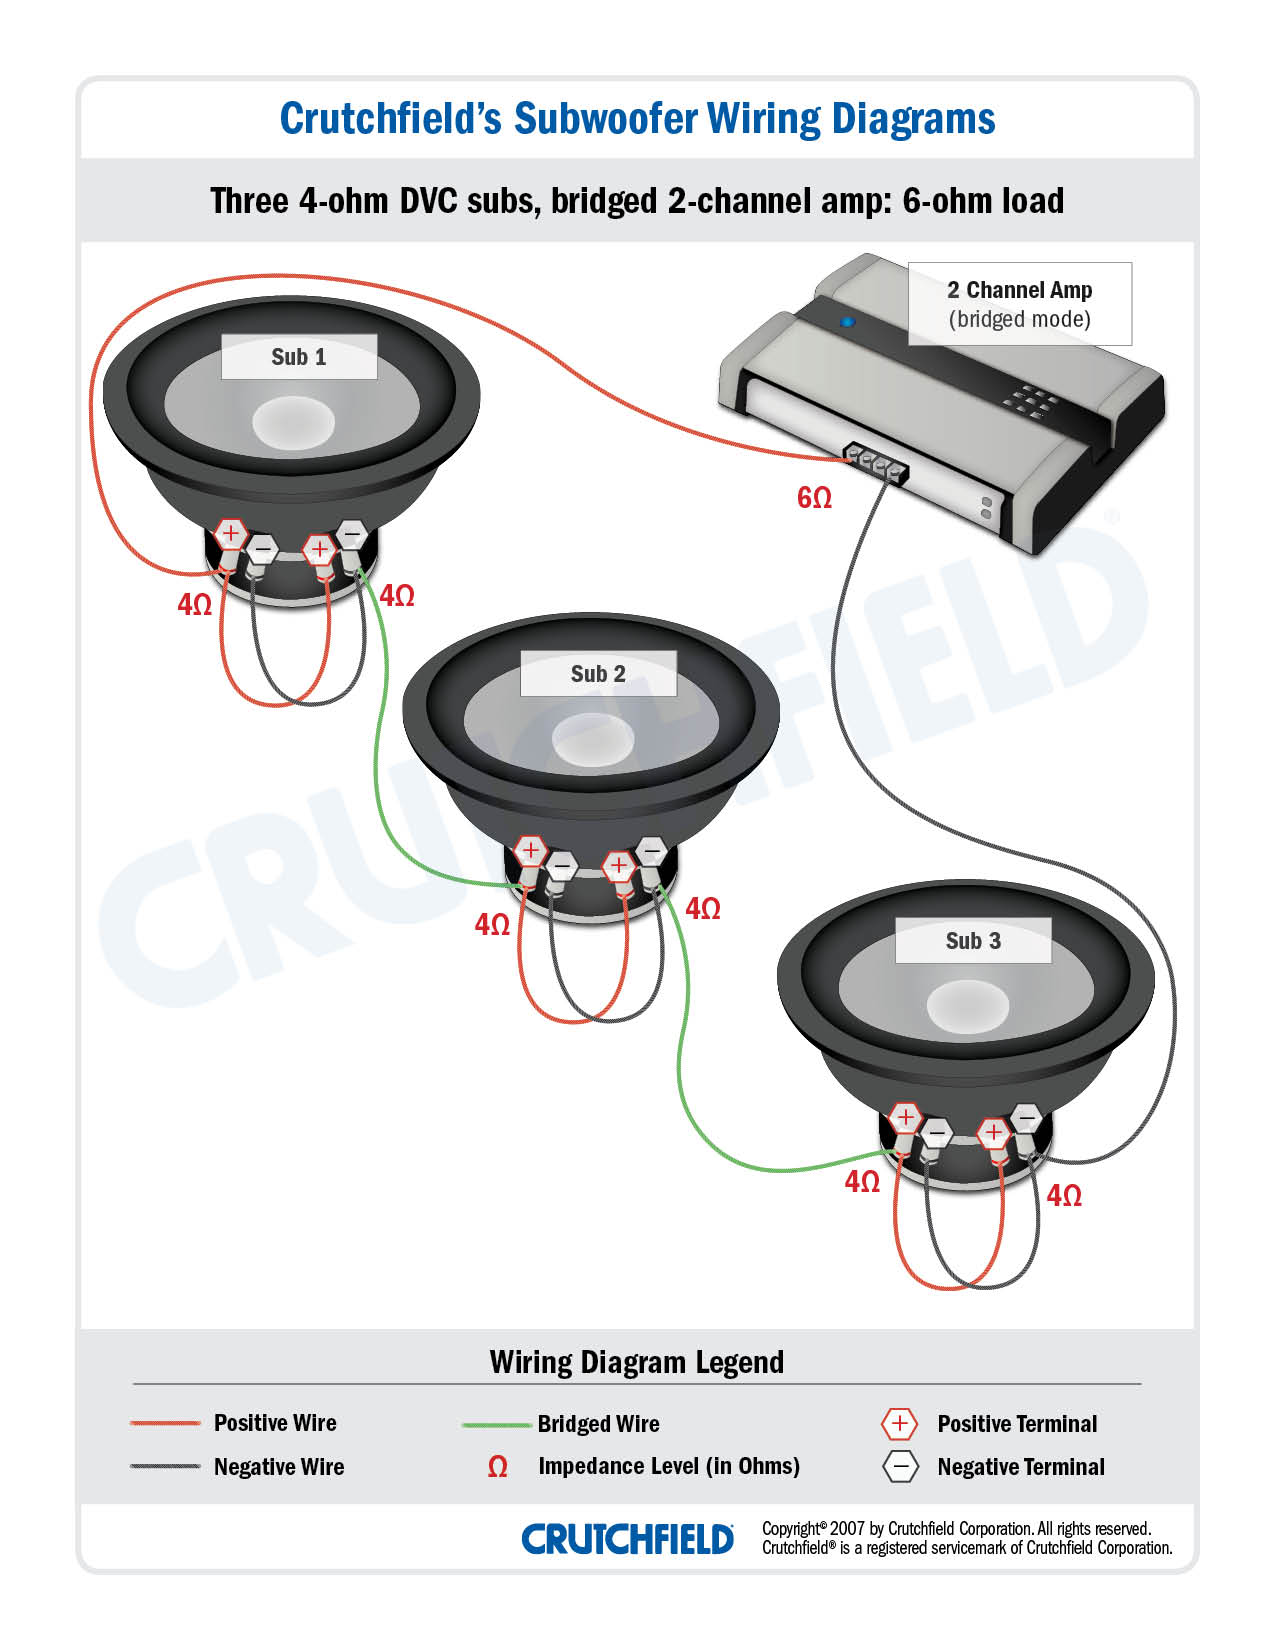 subwoofer wiring diagrams how to wire your subs rh crutchfield com crutchfield wiring diagram speakers crutchfield wiring diagrams subwoofer